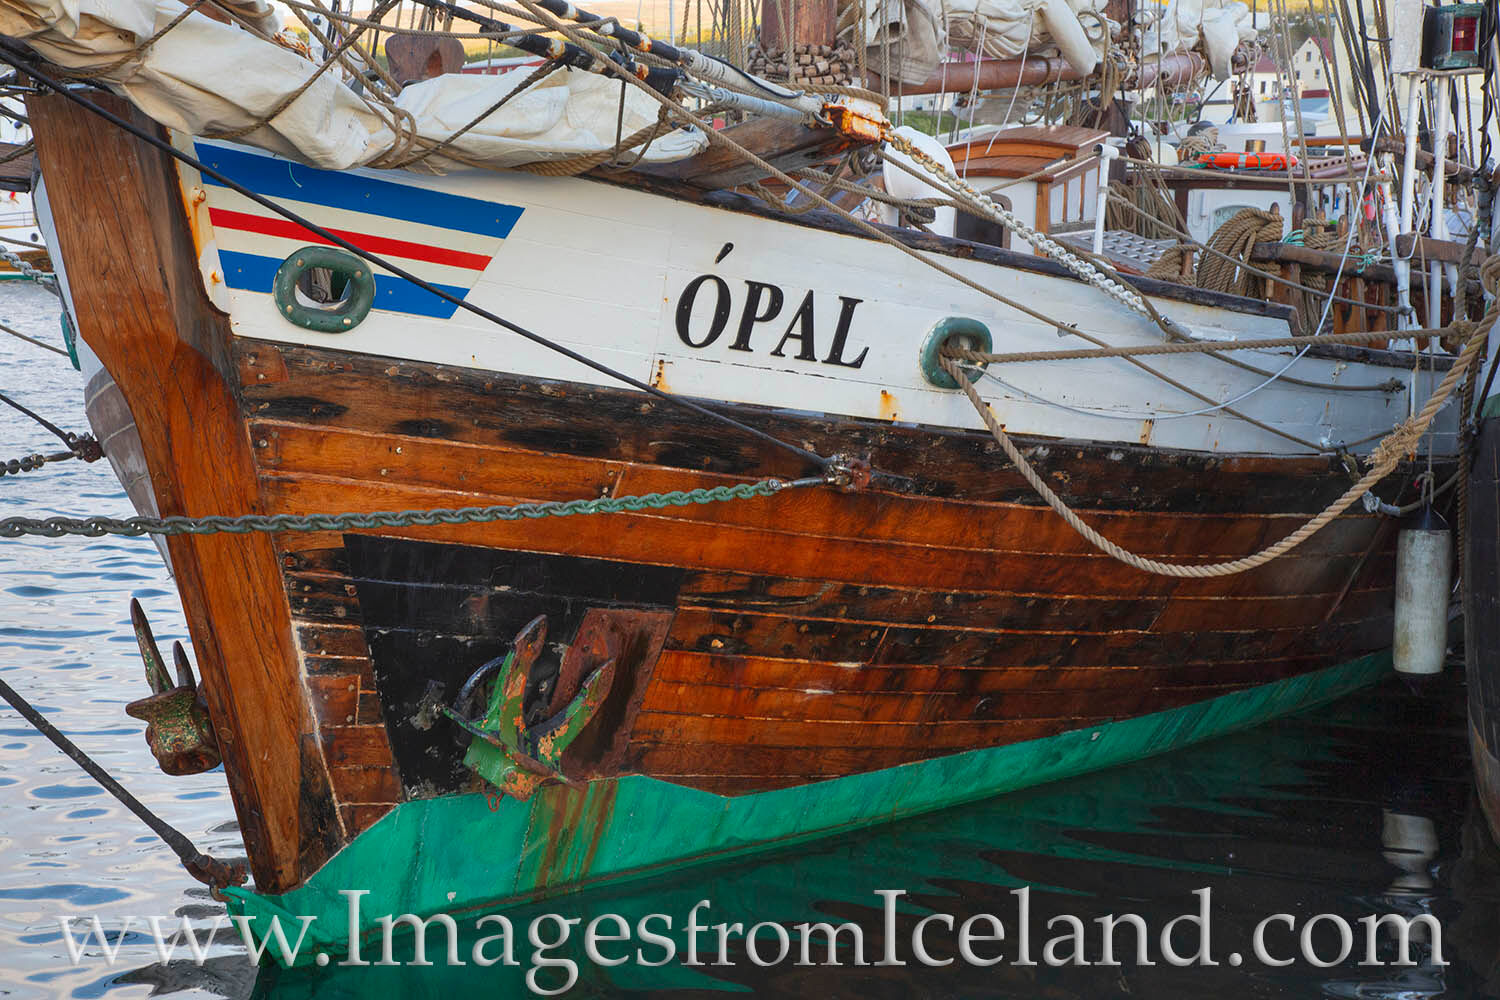 A ship called the Opal rests in the quiet harbor of Husavik, Iceland.